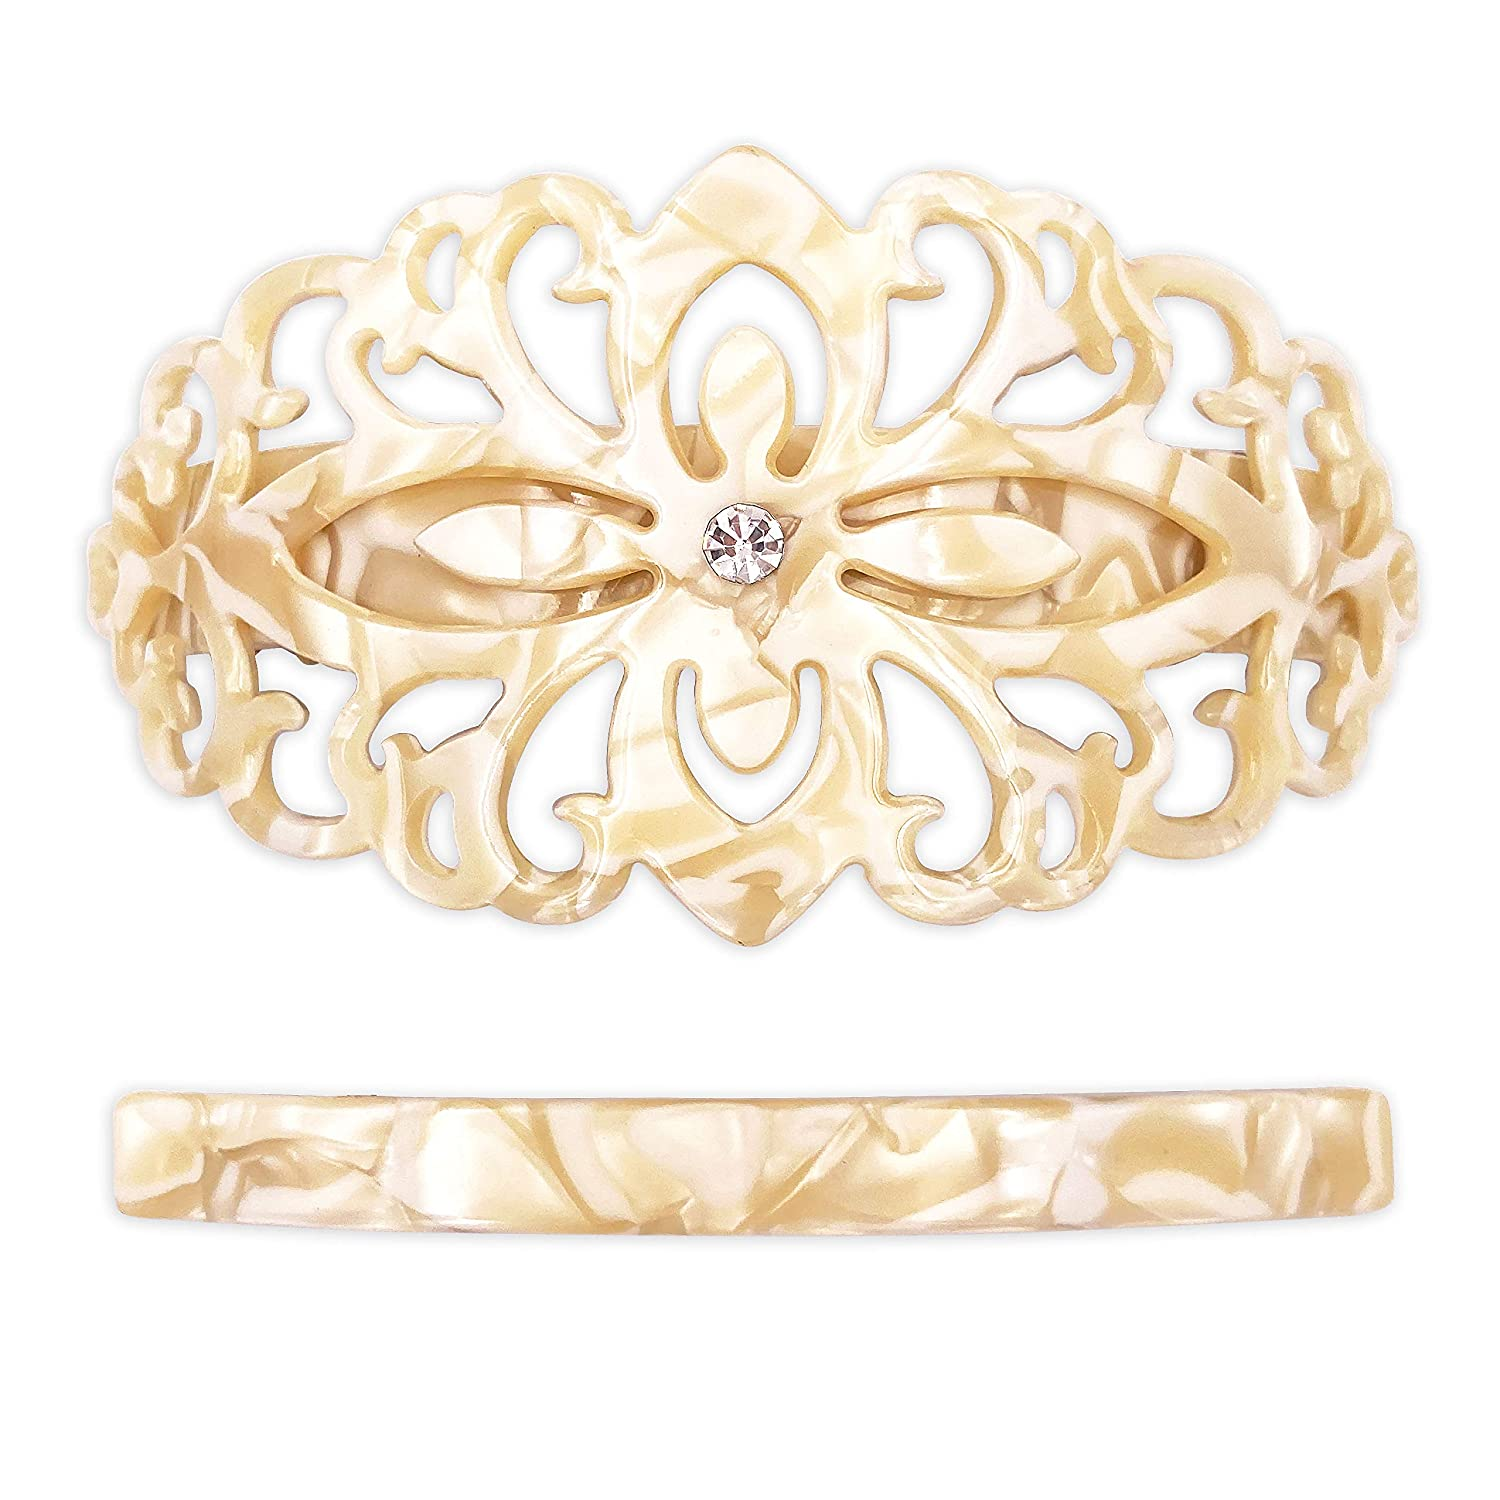 Strong Large Hair Barrette Set For Thick Hair Ivory White Marble Filigree for Women : Beauty